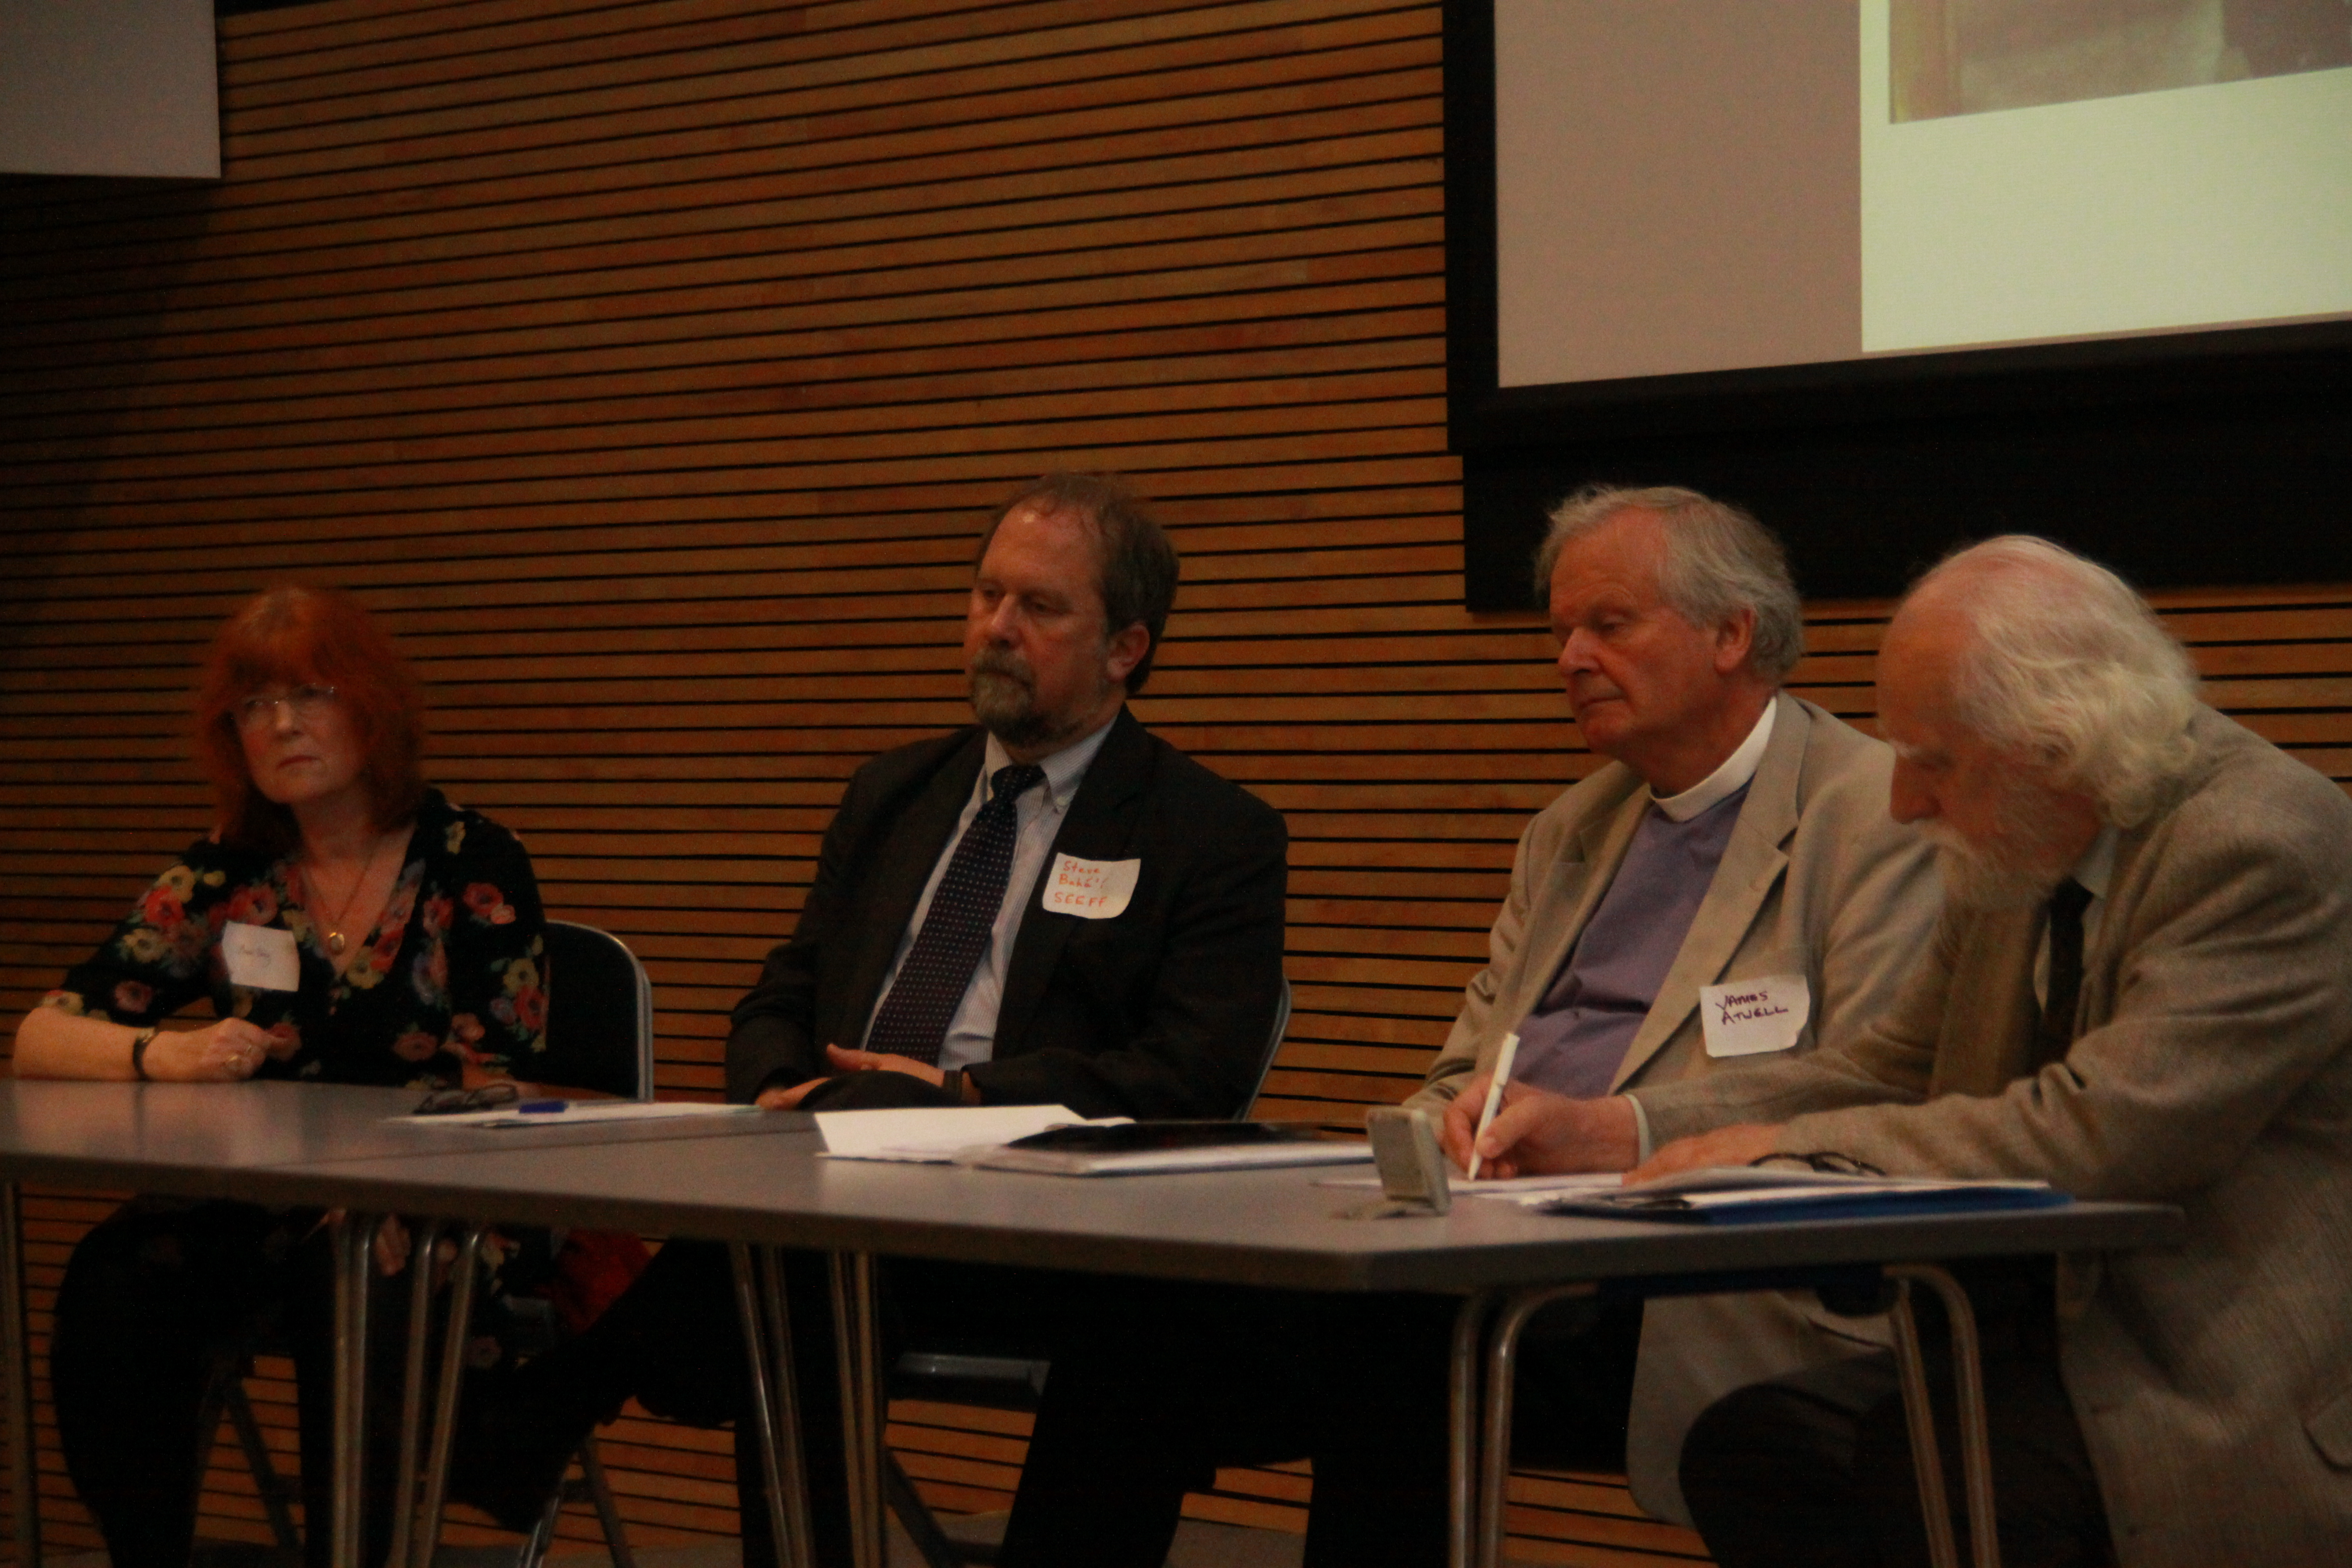 Dr Anna King, Stephen Vickers, The very rev James Atwell, Bede Gerard